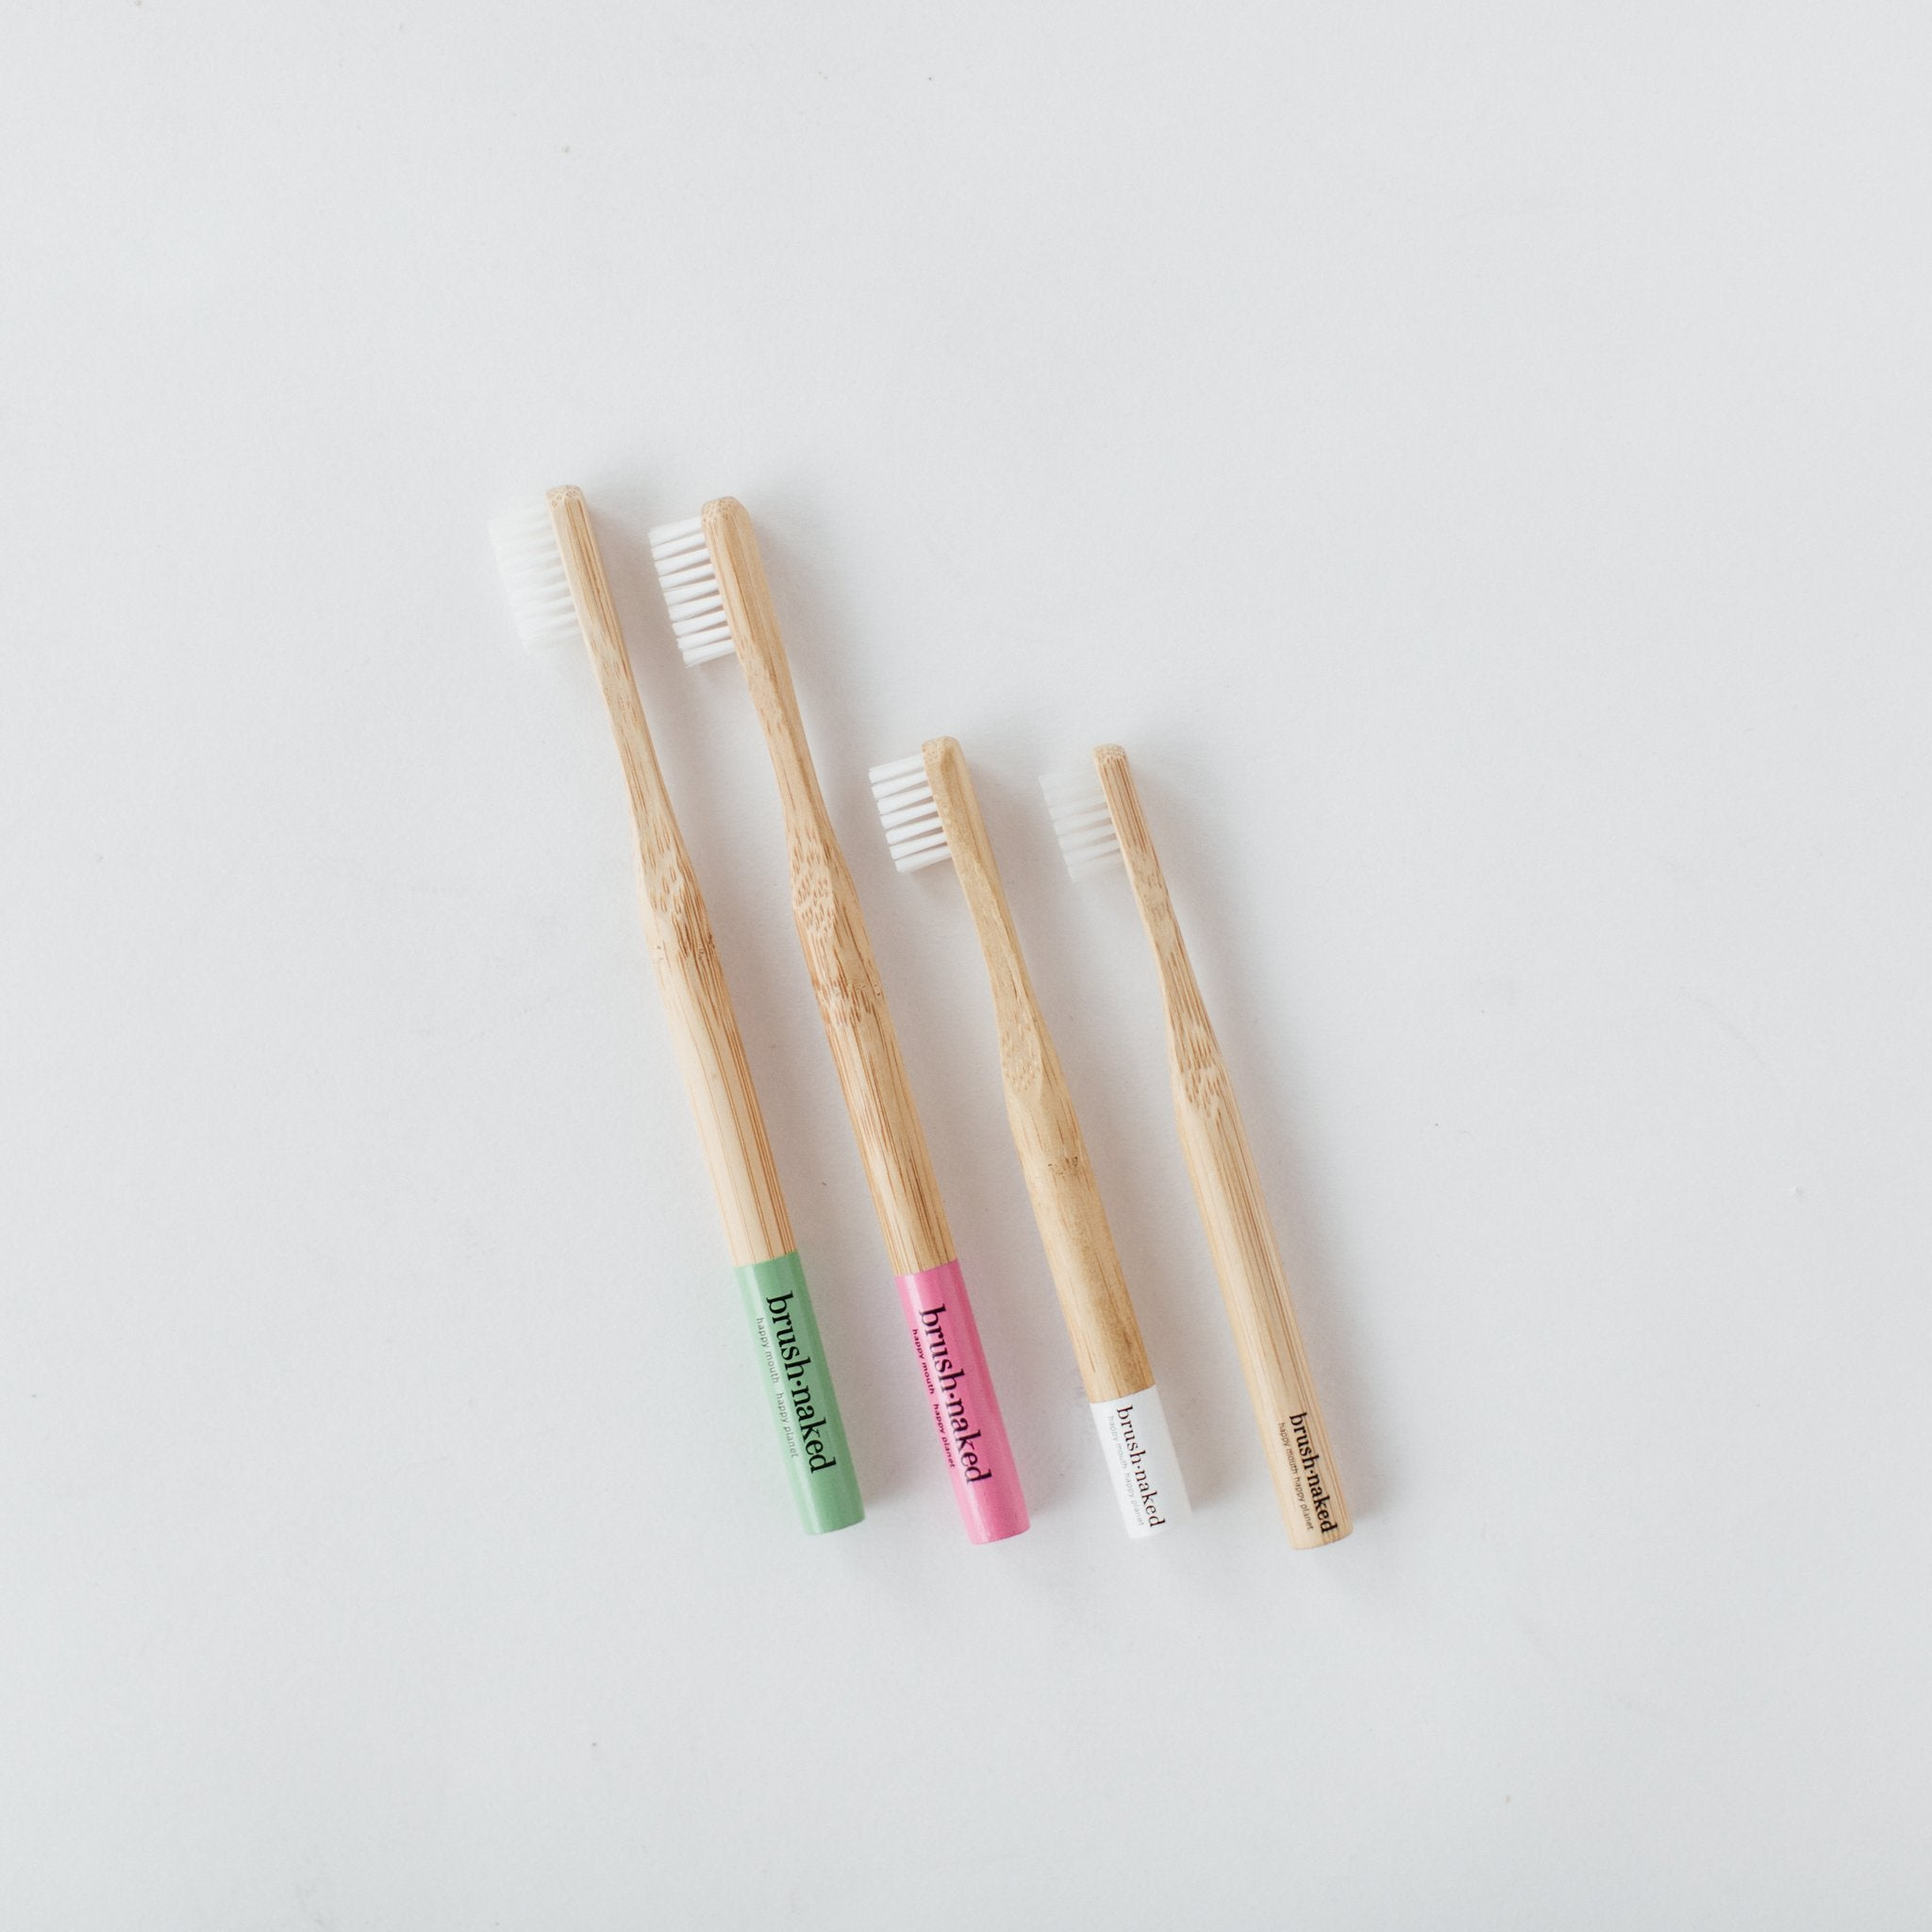 Biodegradable Bamboo Toothbrush, Plant-Based Bristle, Adult, Kids